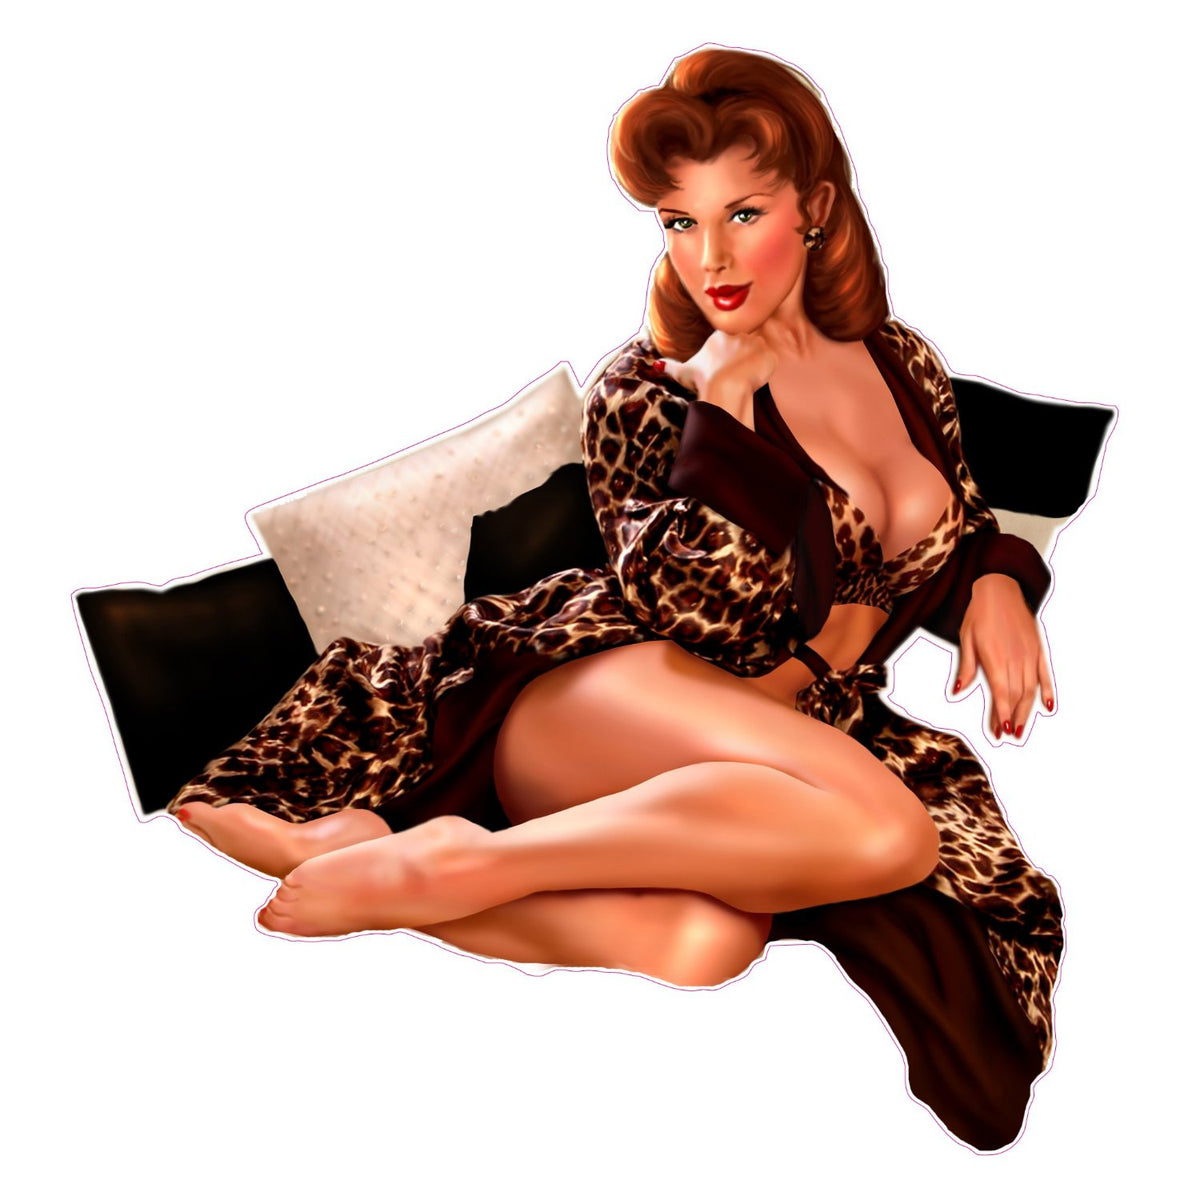 Red Head With Leopard Outfit Pin Up Girl Decal Nostaglia